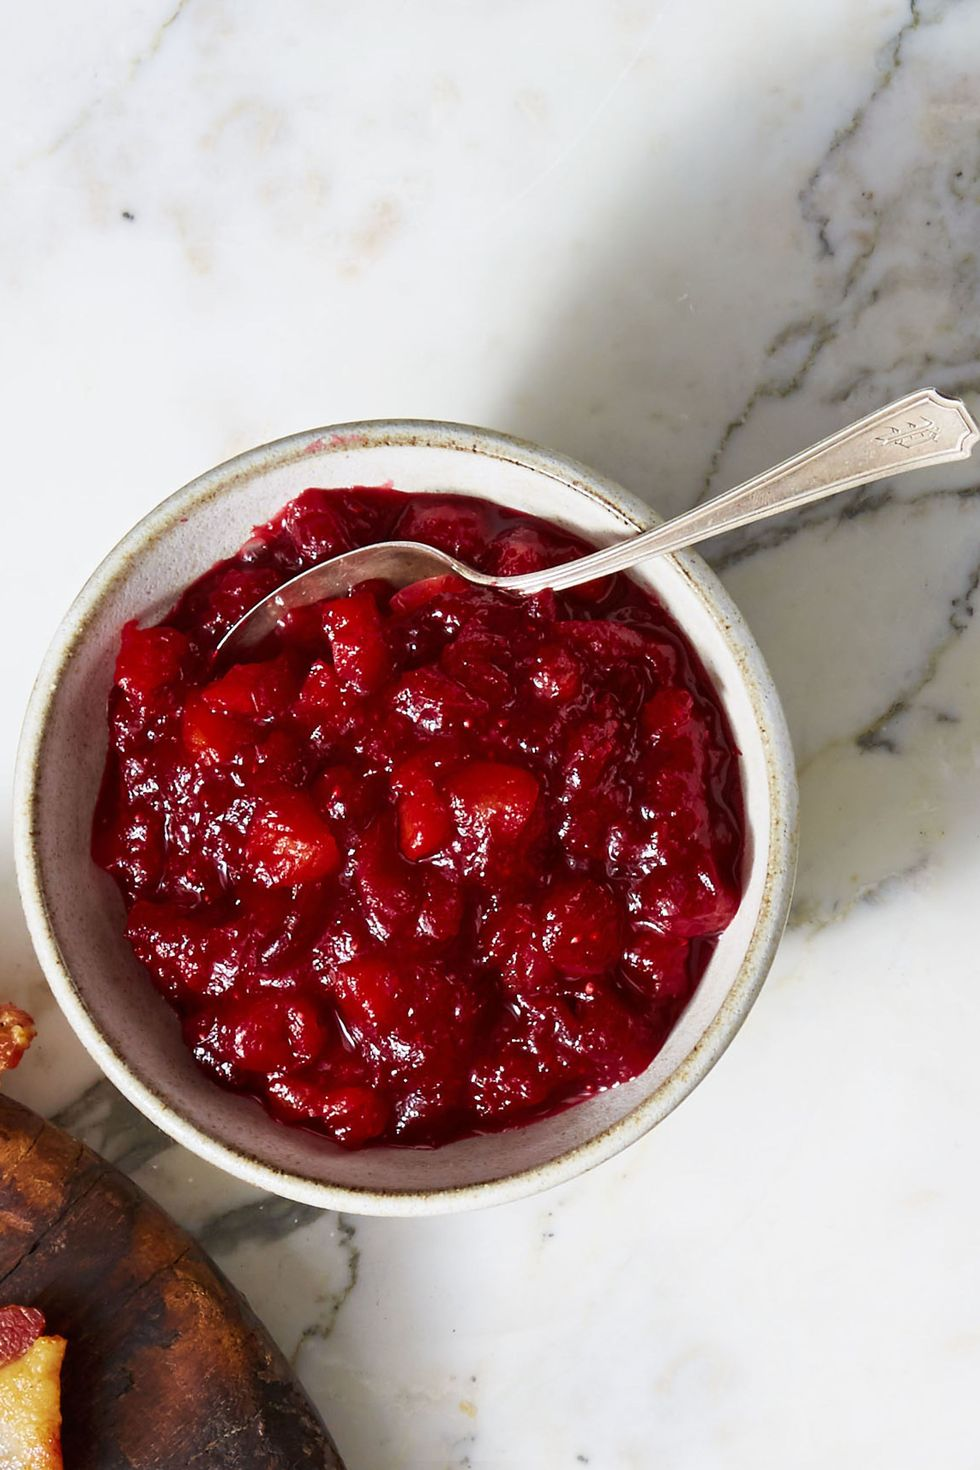 gallery-1508954645-citrusy-cranberry-apricot-compote-1117